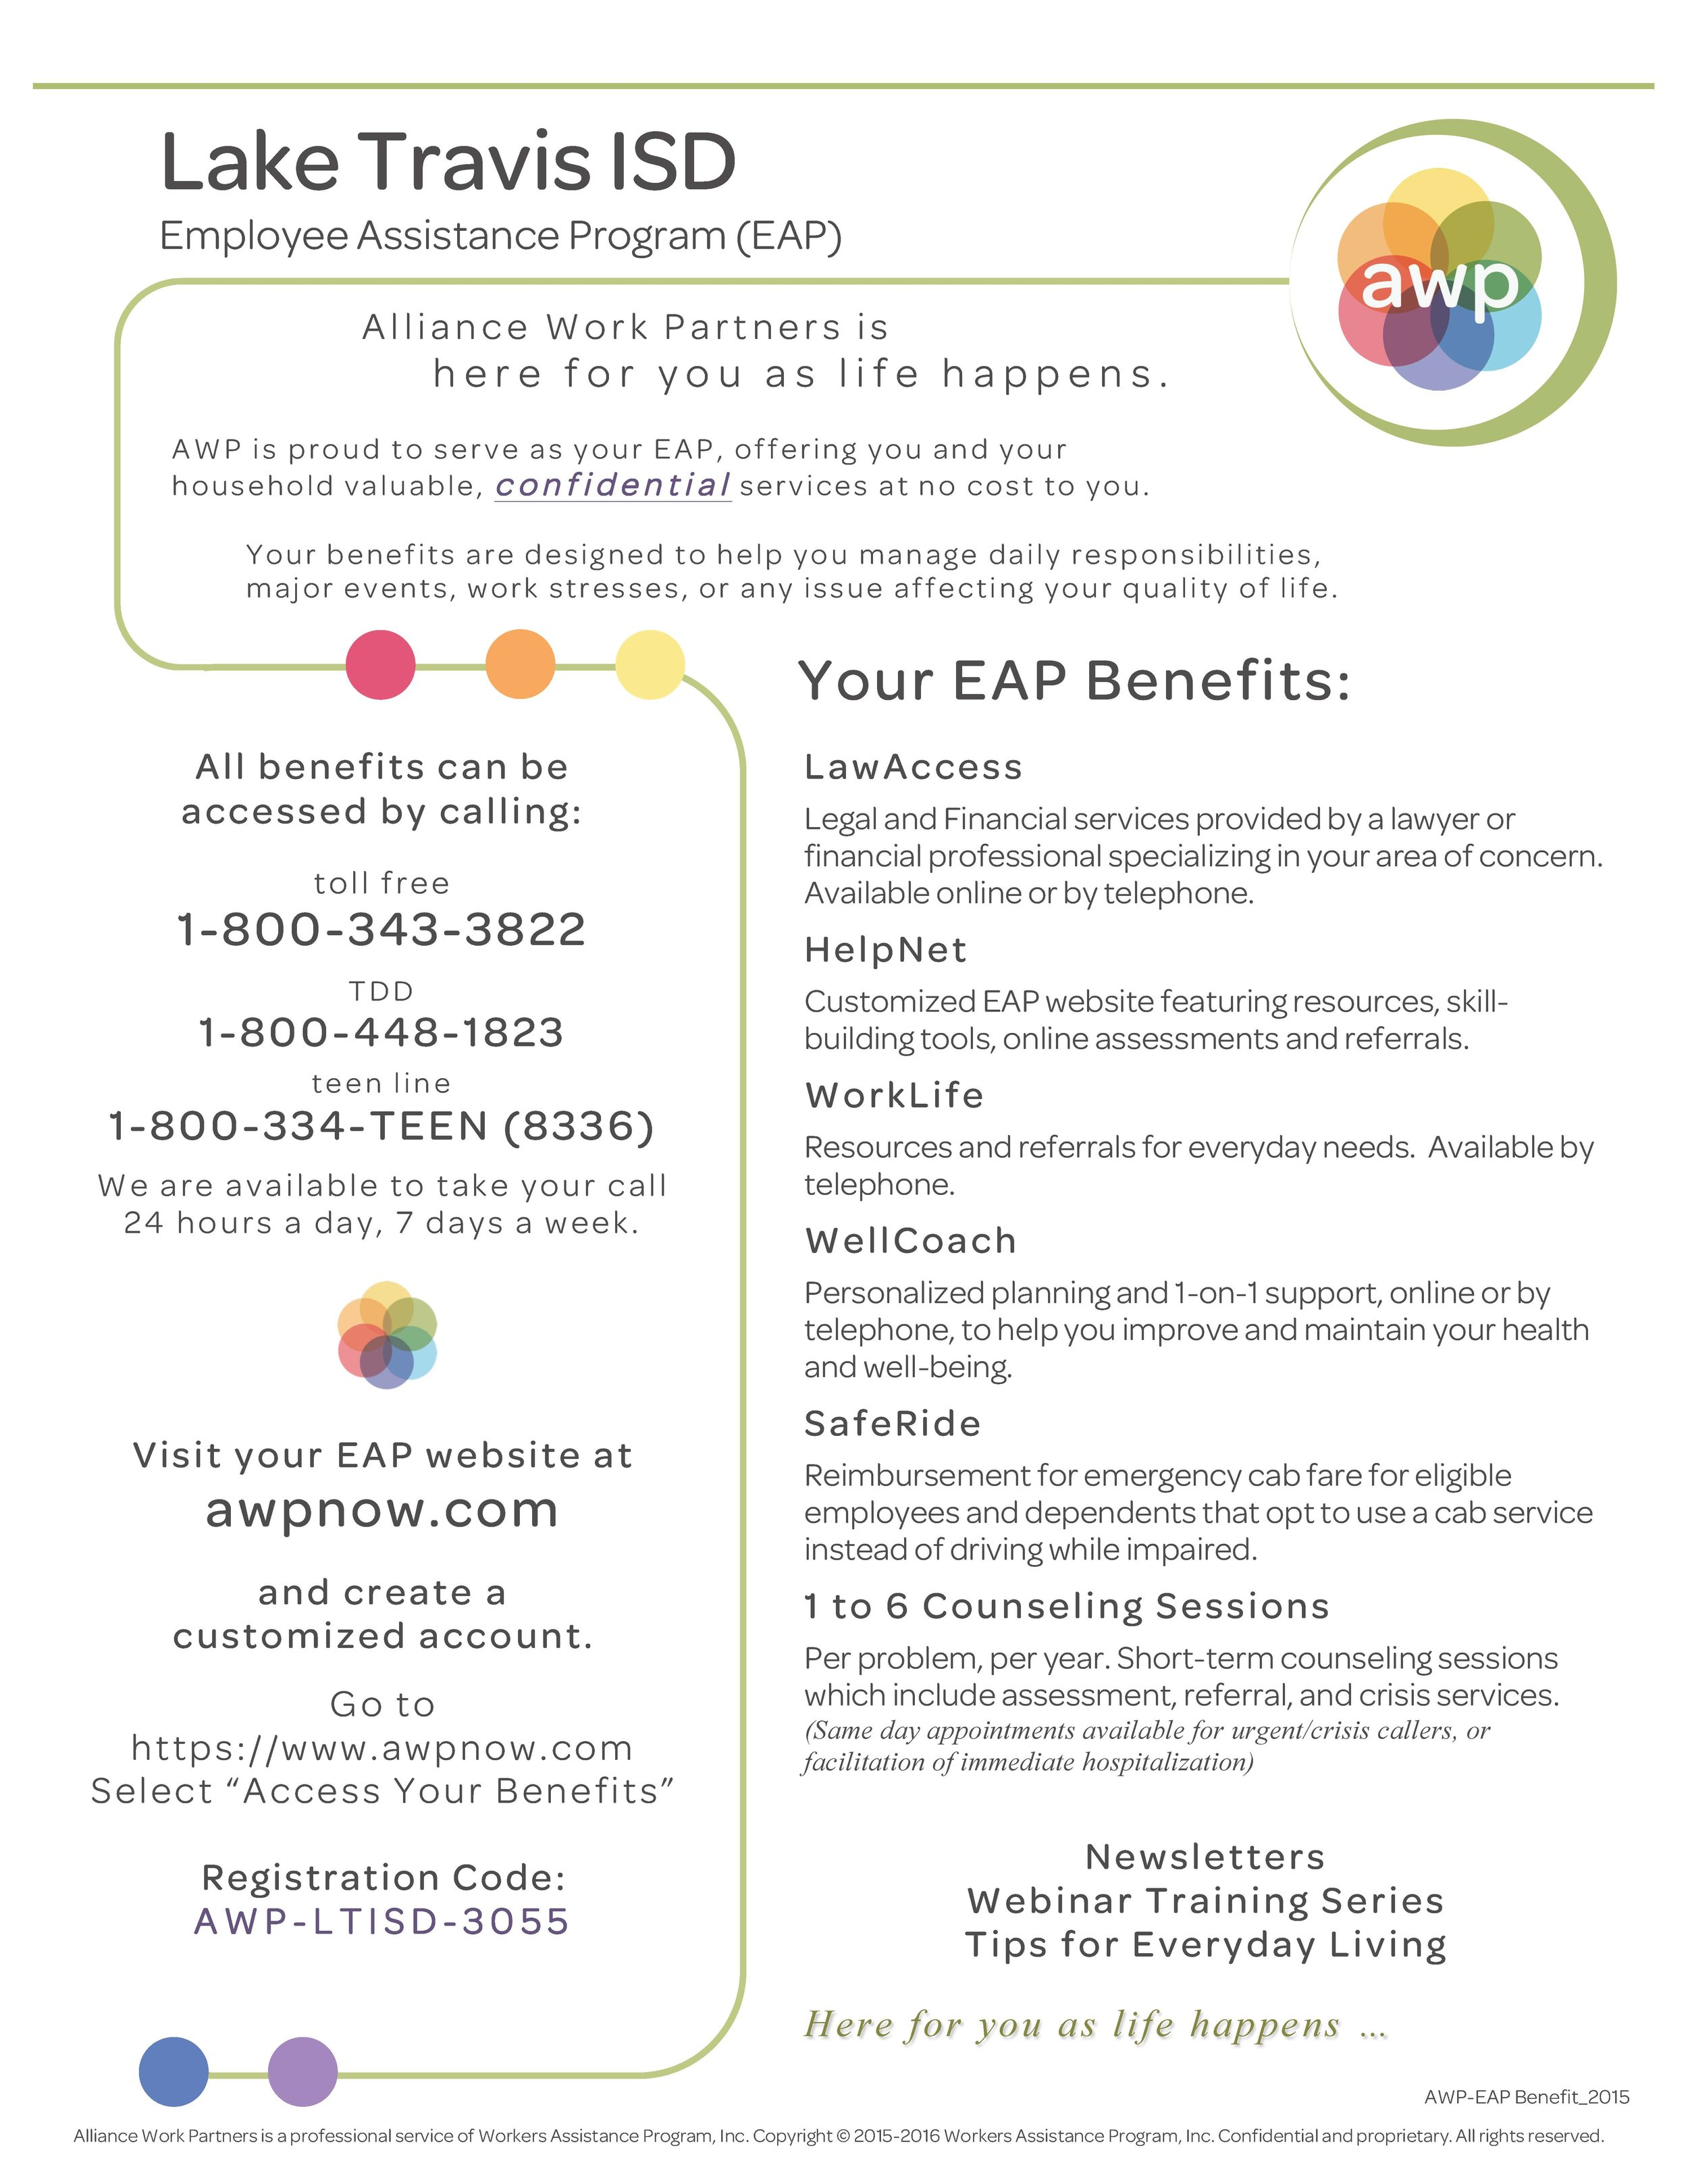 EAP-Benefits Flyer-LTISD 2019_Page_1.jpg